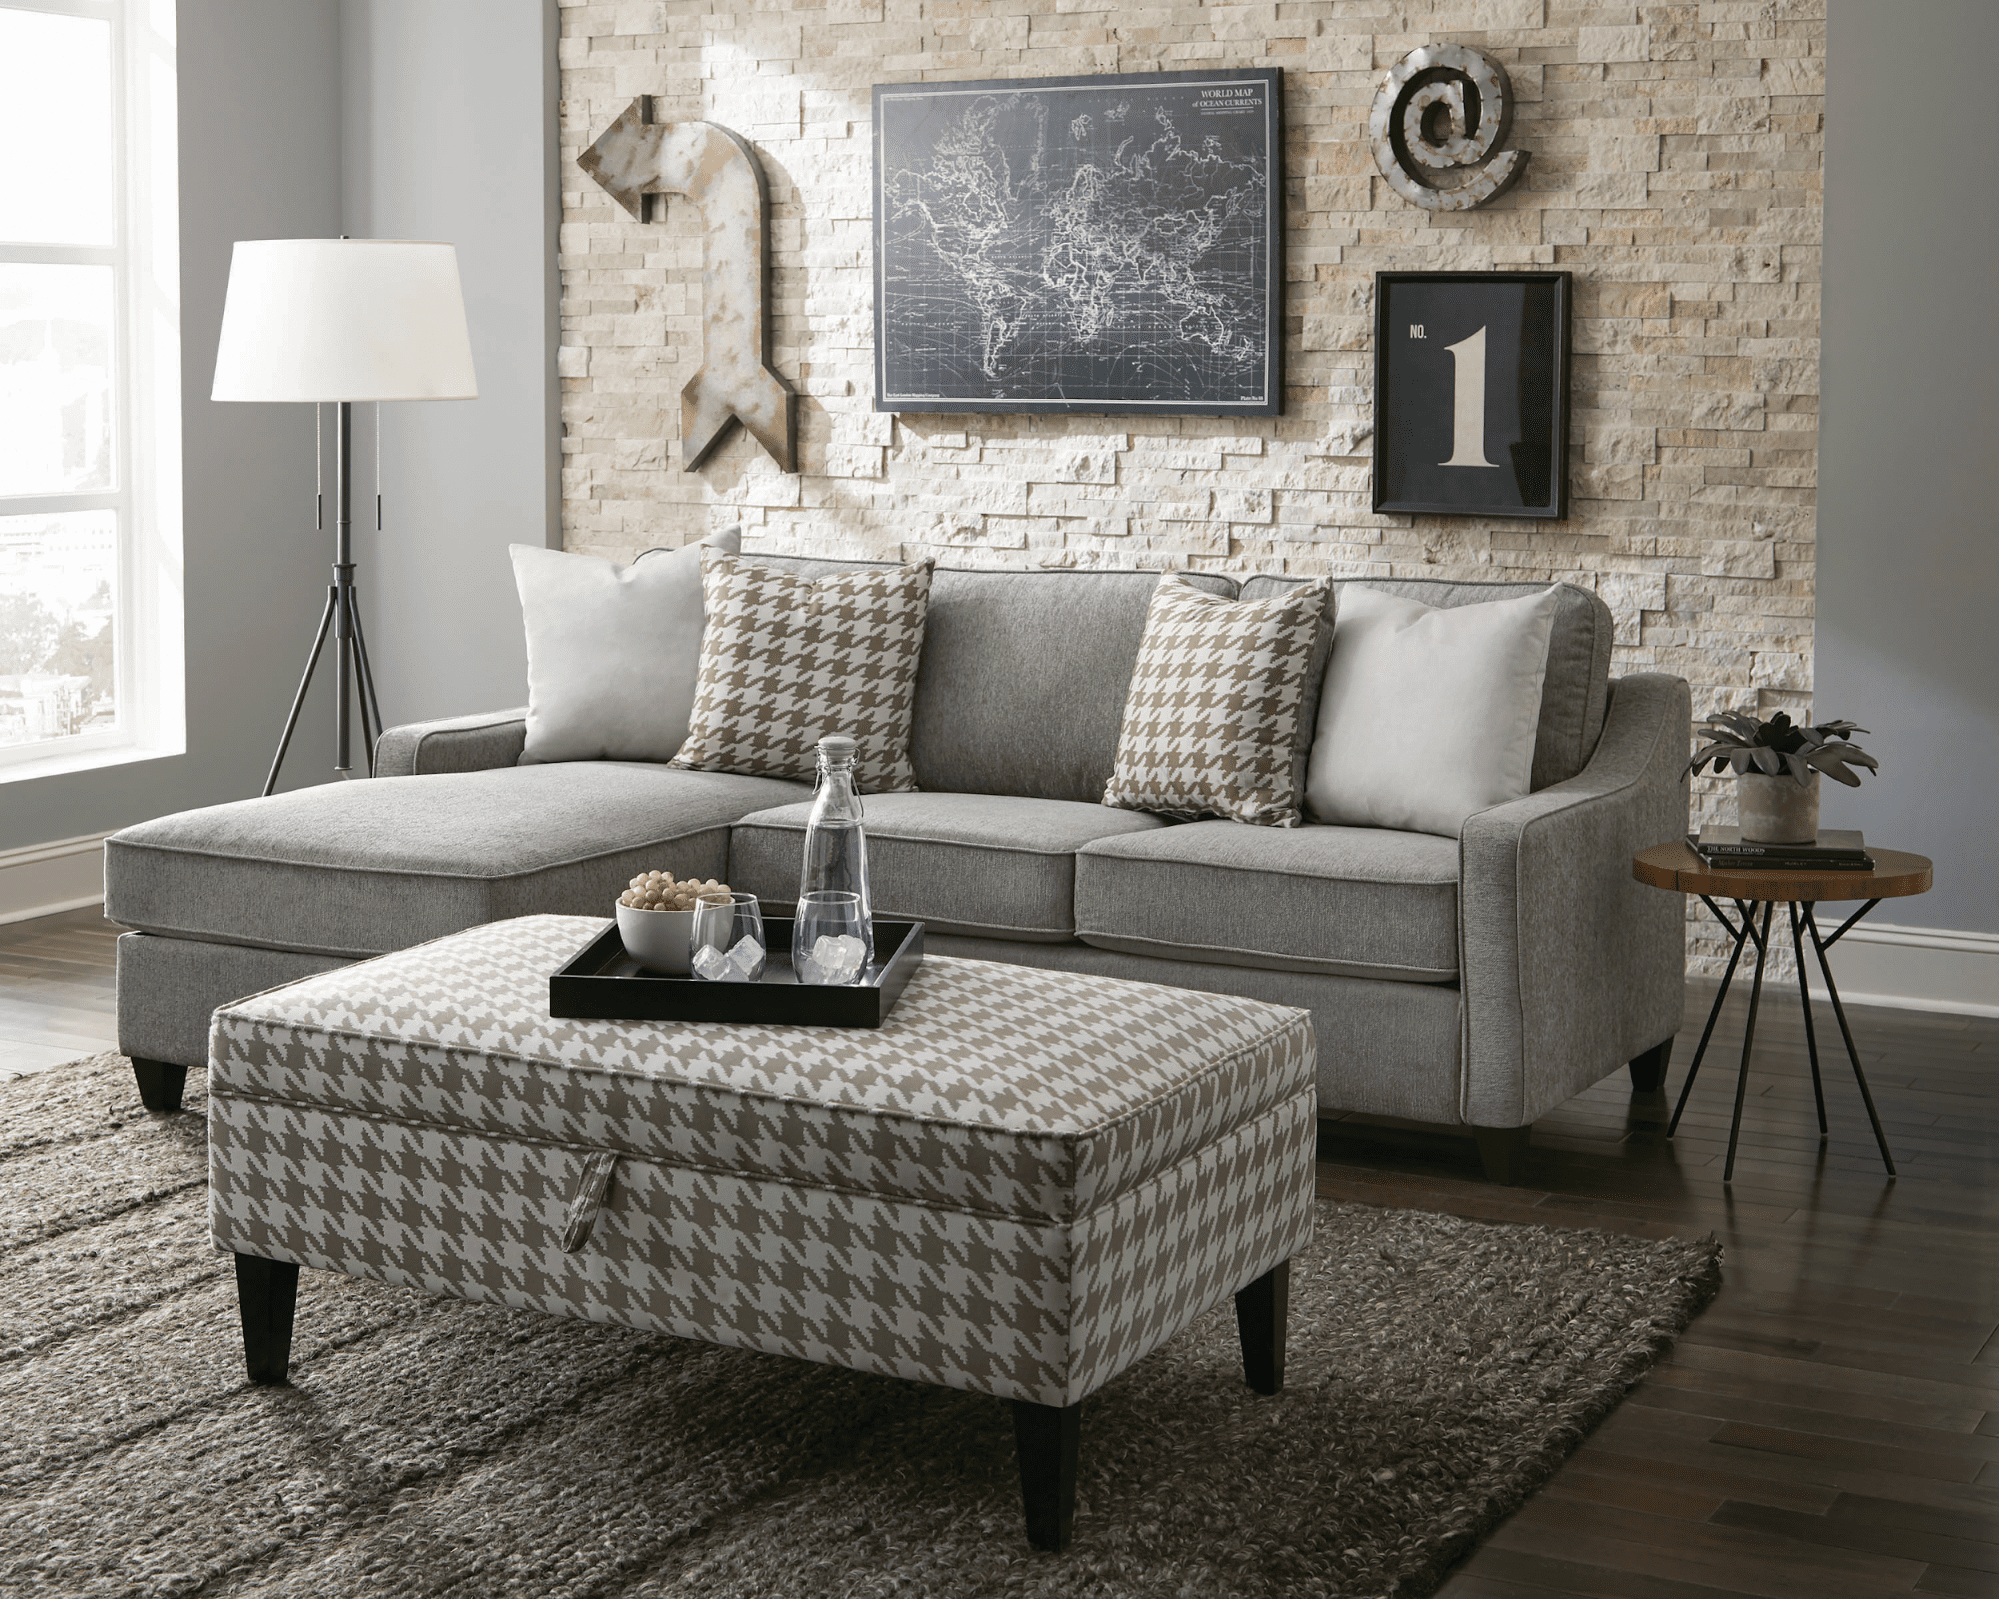 How to pick a small sectional sofa for a small space